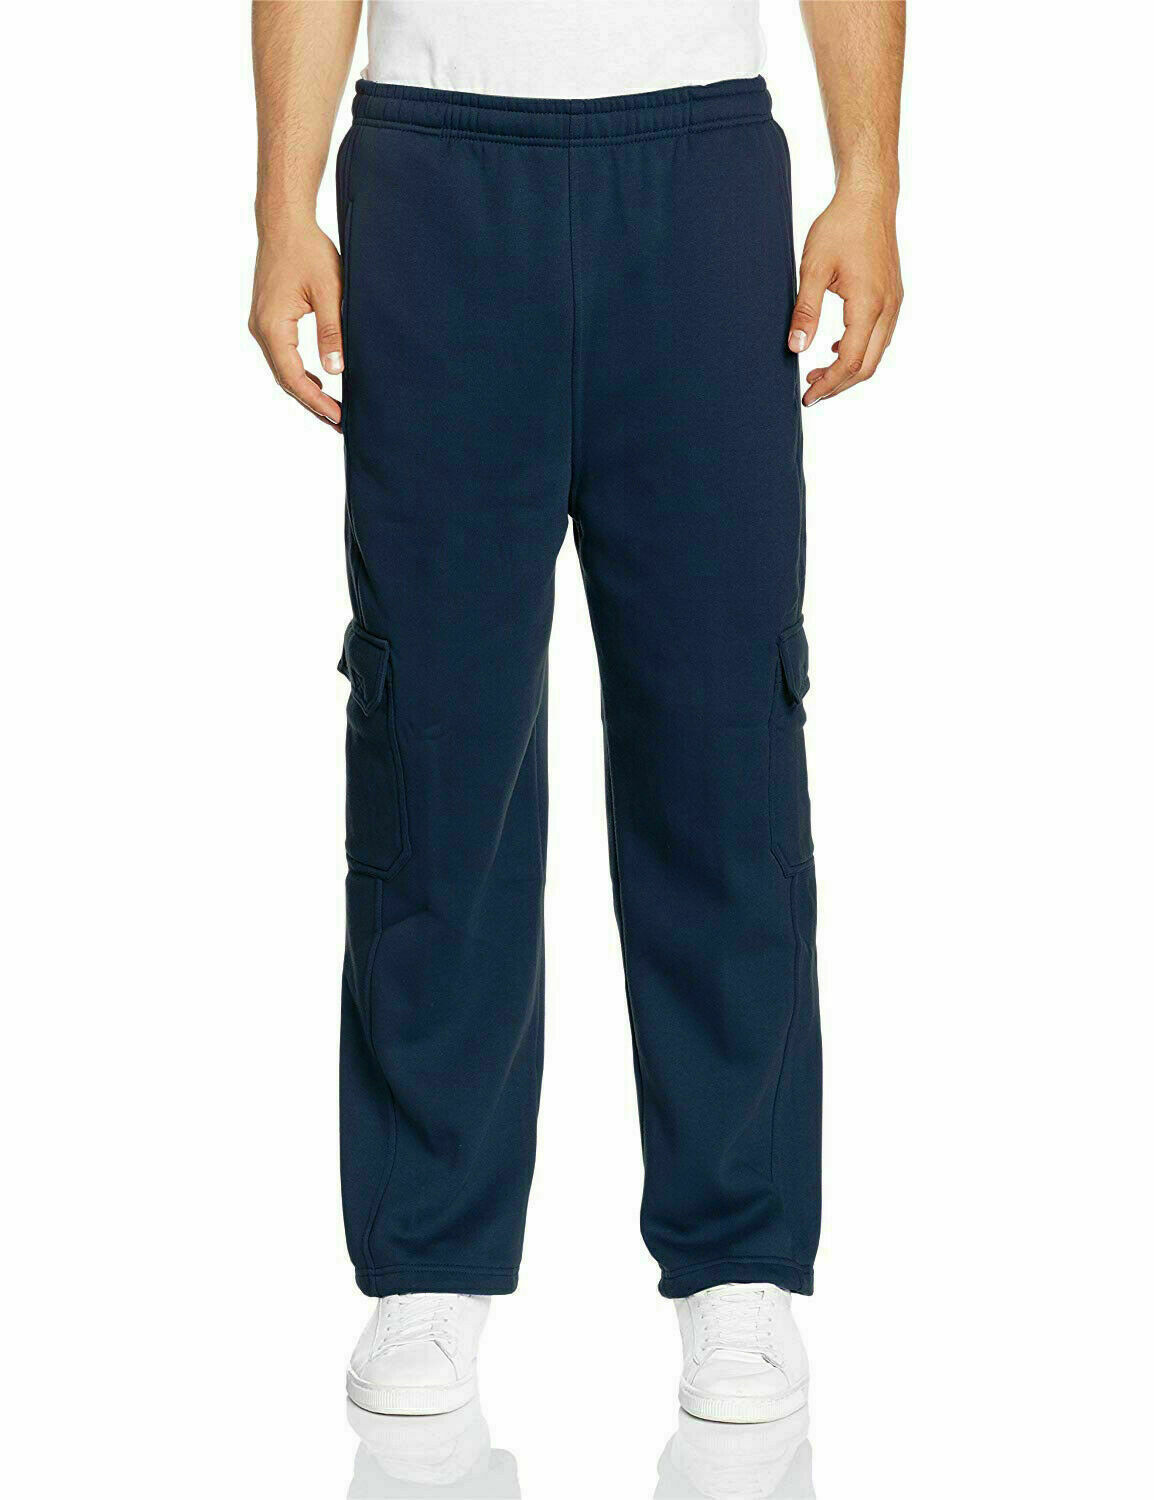 Mens Heavy Fleece Casual Plain Athletic Gym Sport Cargo Navy Sweatpants - M